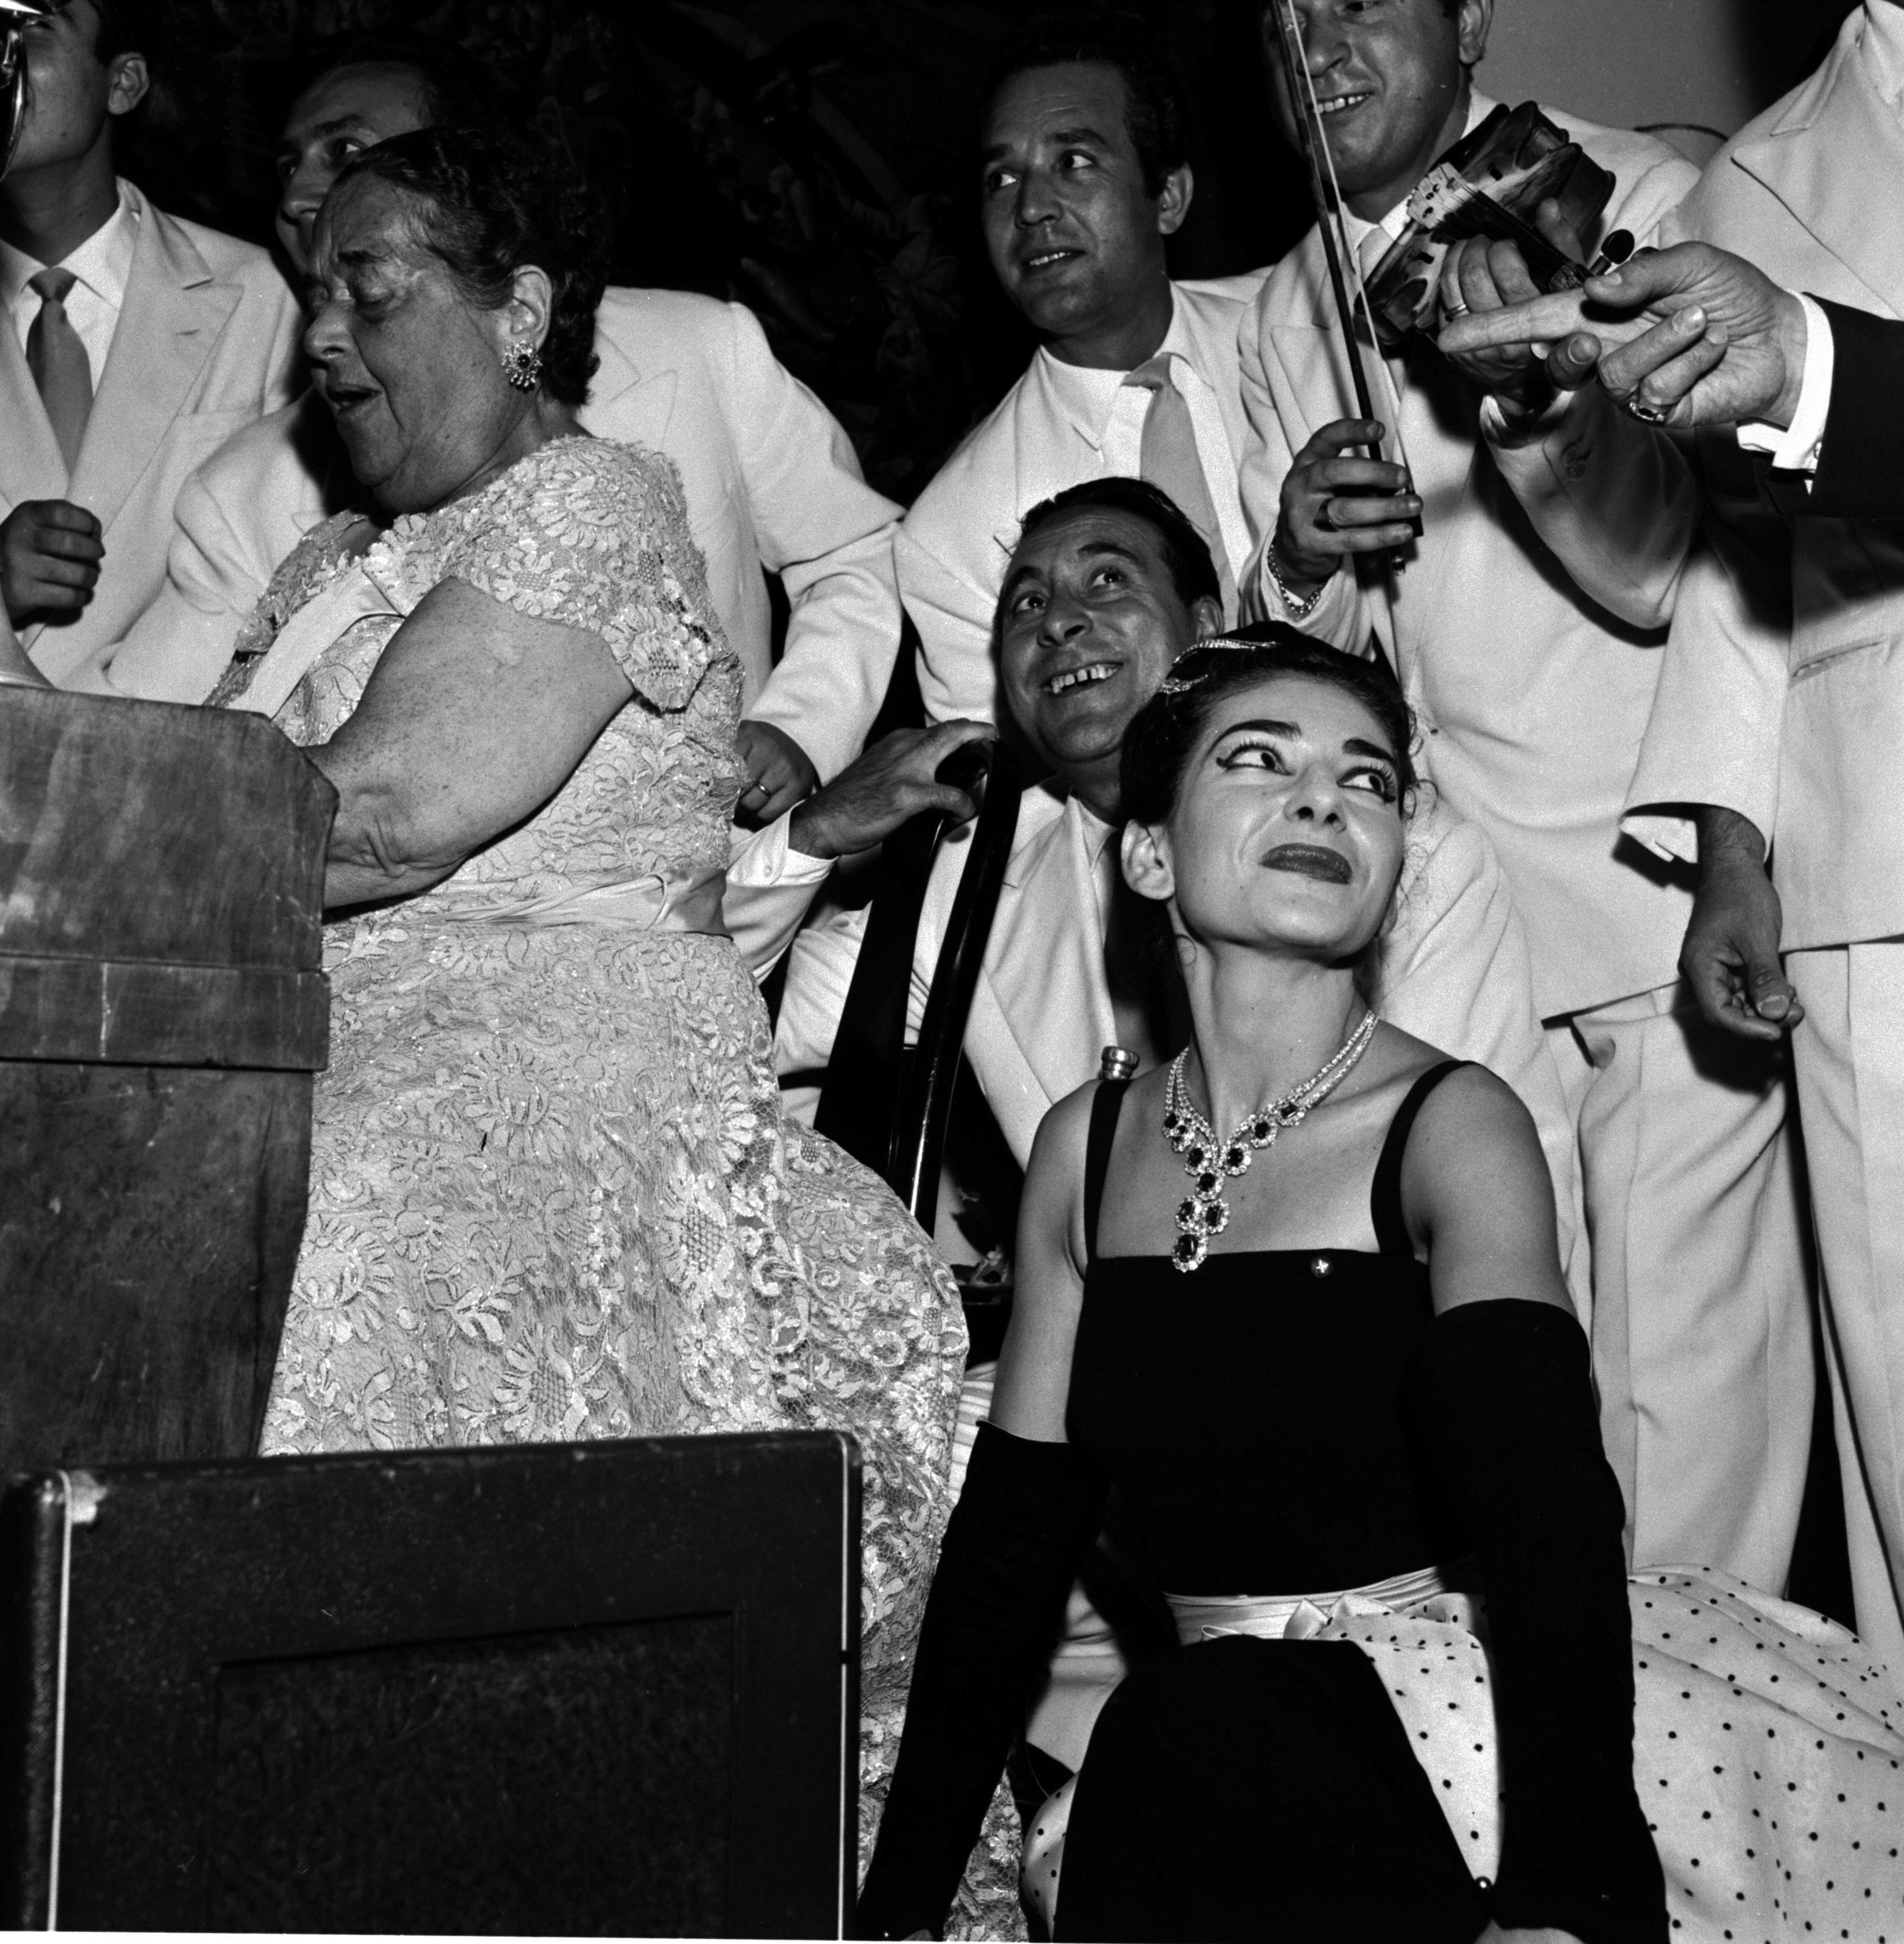 Maria Callas at a Party in Venice in 1957